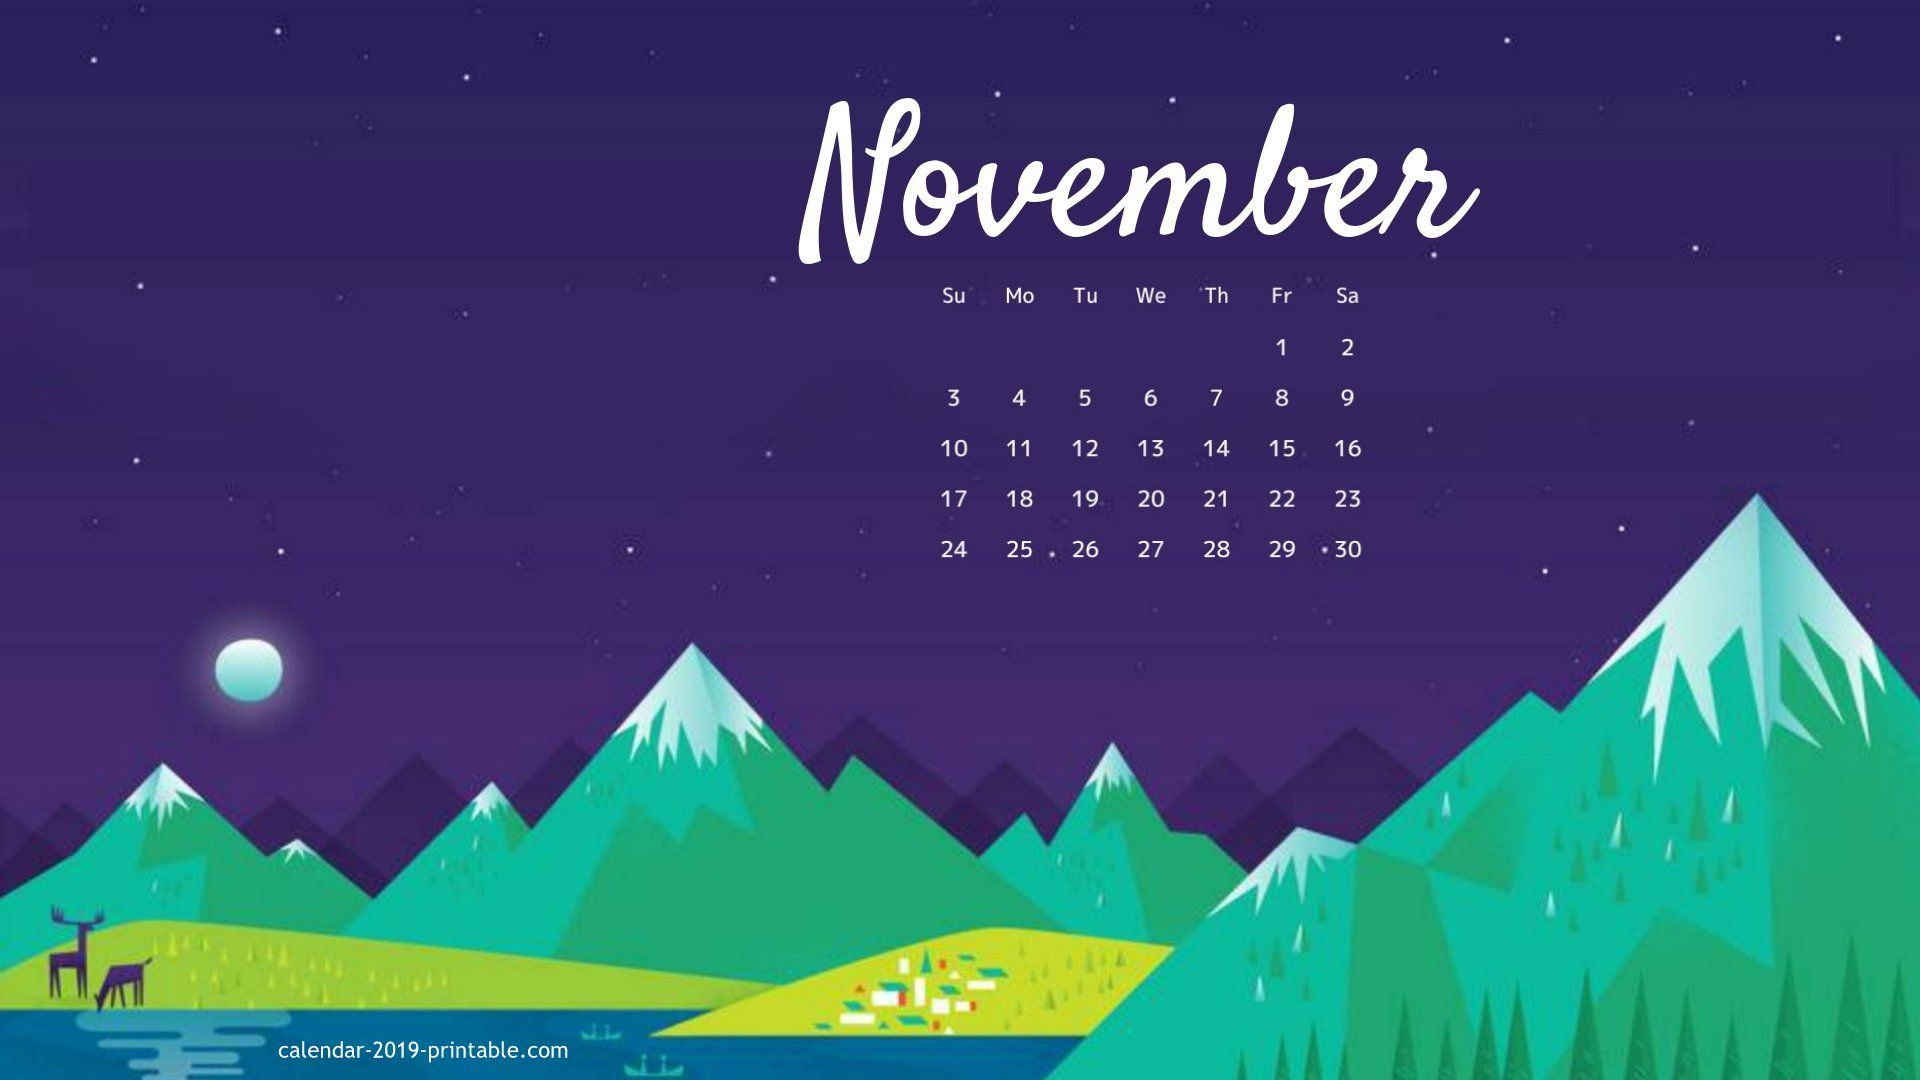 November 2019 Calendar Desktop Wallpaper